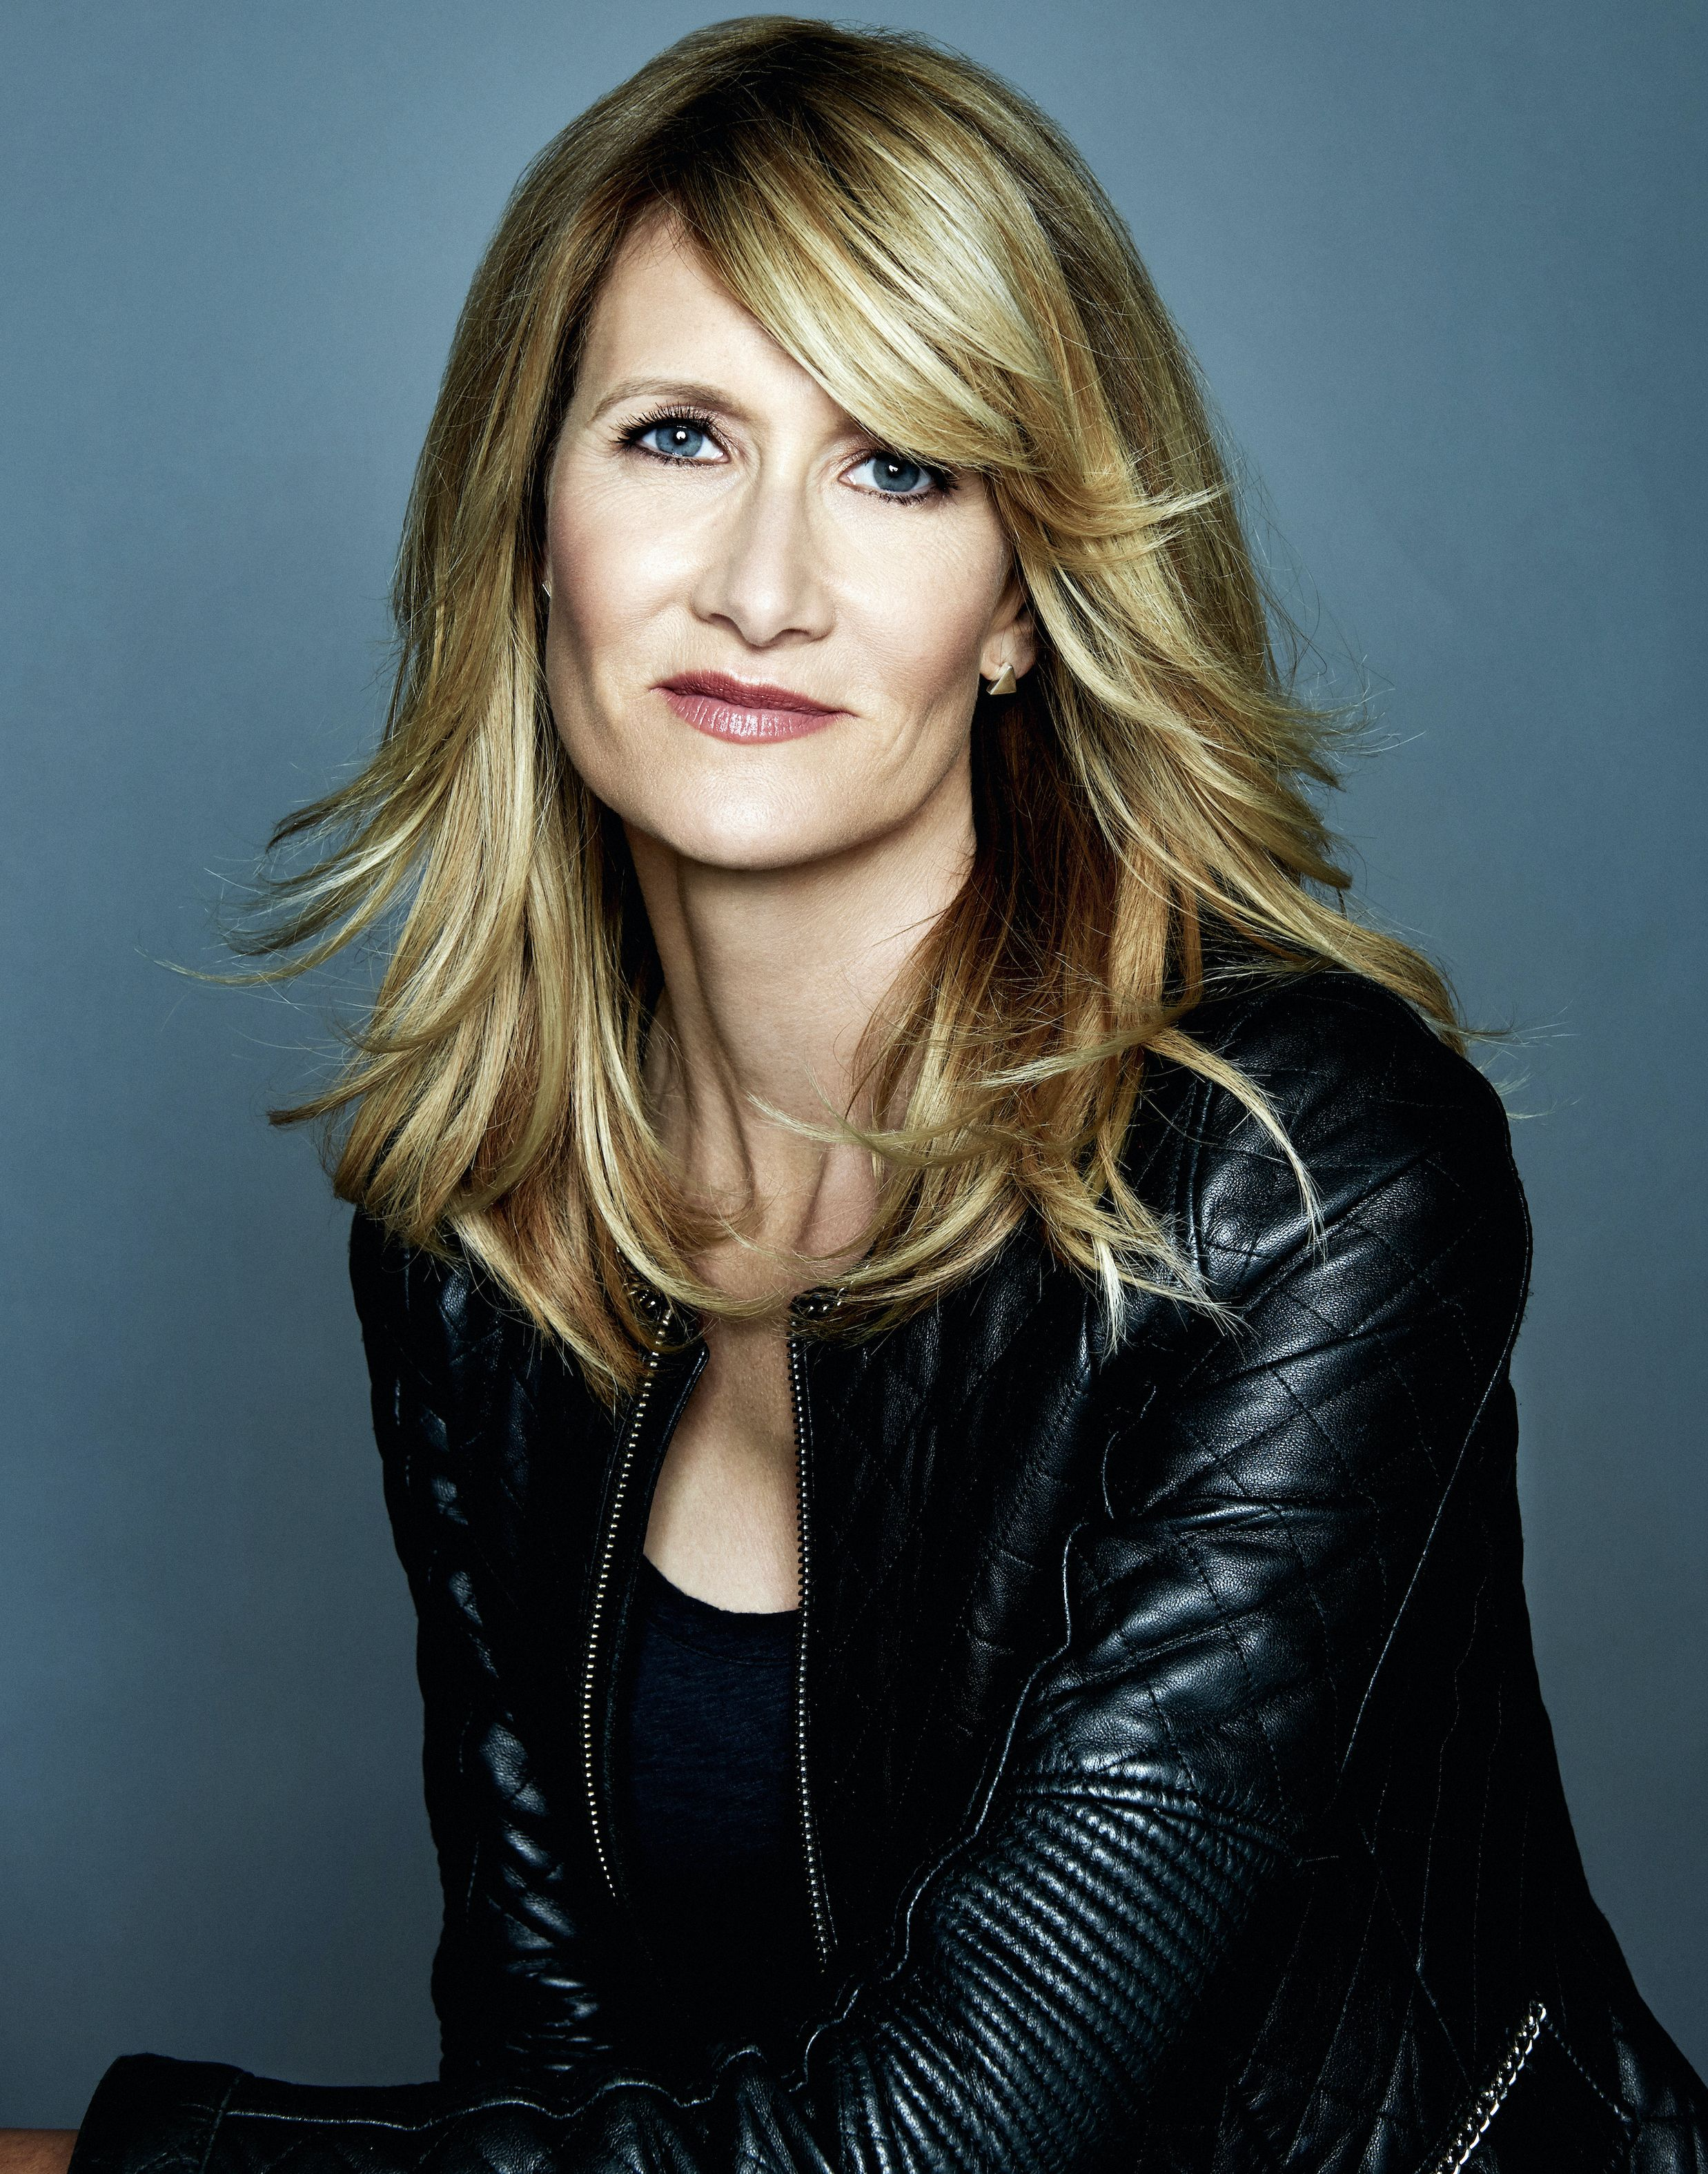 Laura Dern on Jurassic World, Coffee With David Lynch, and Working With the American Lung Association